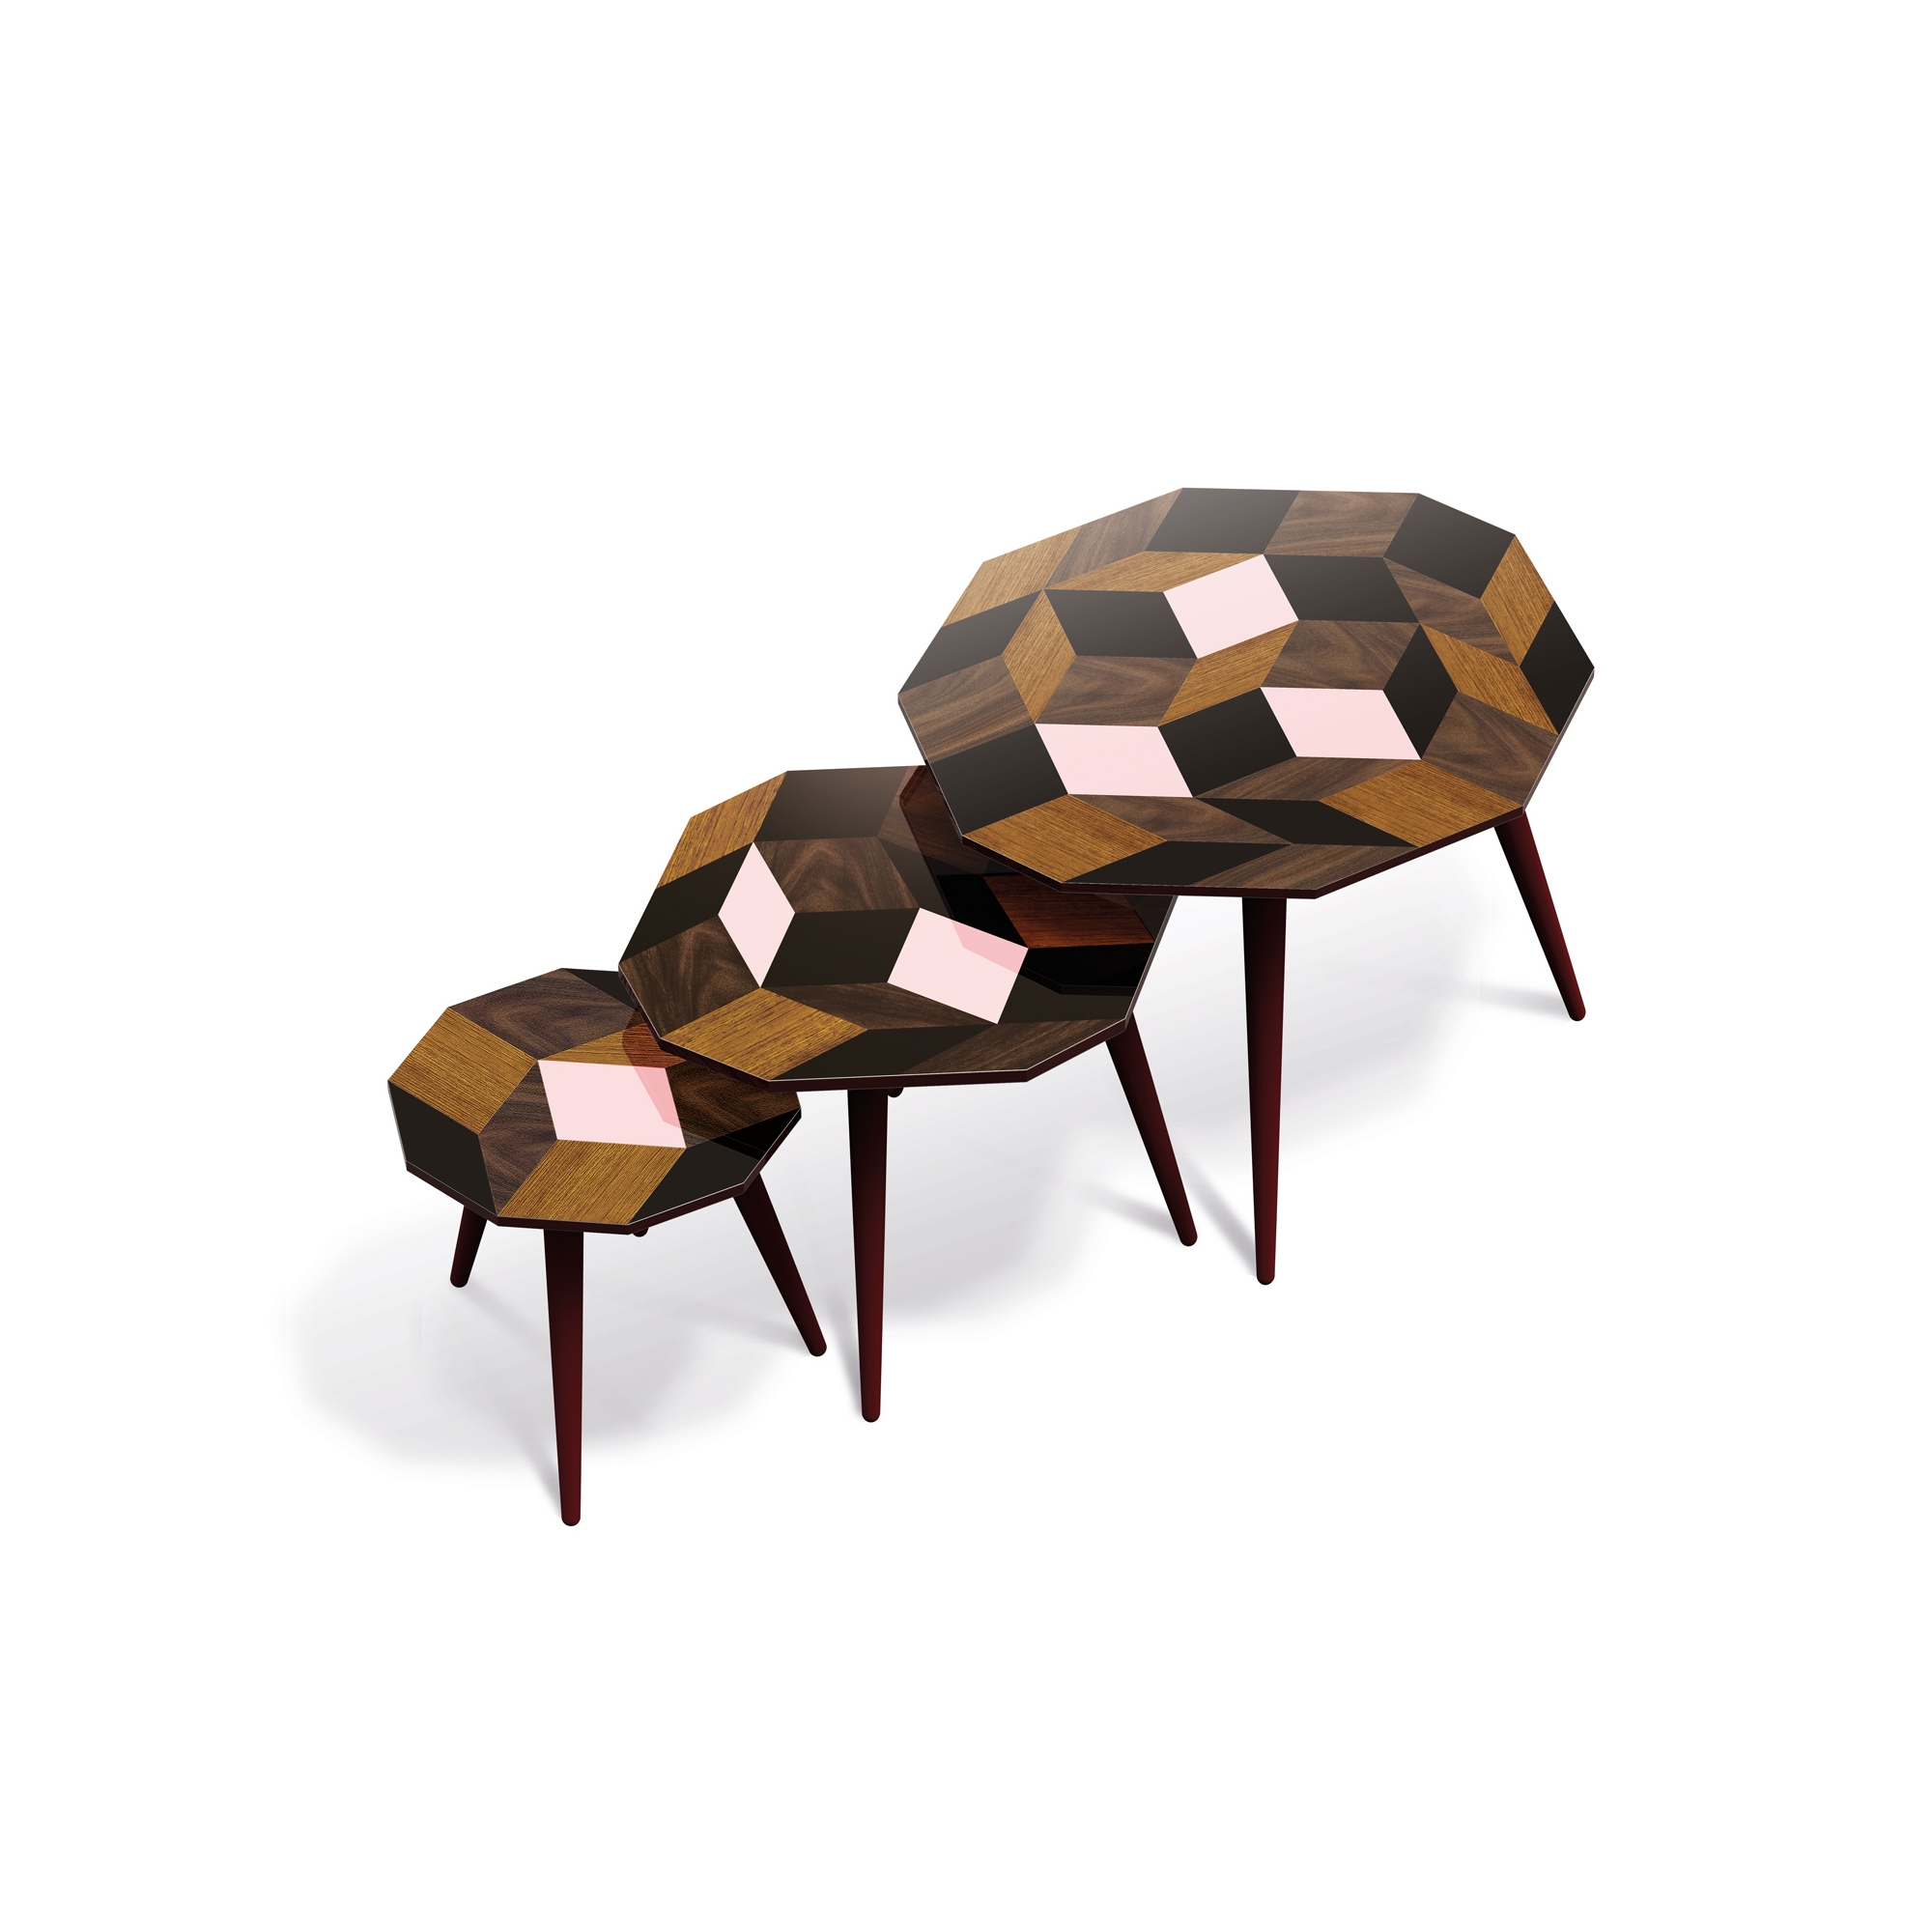 Trio de tables d'appoints, motif Penrose Spring Wood Design IchetKar édition Bazartherapy